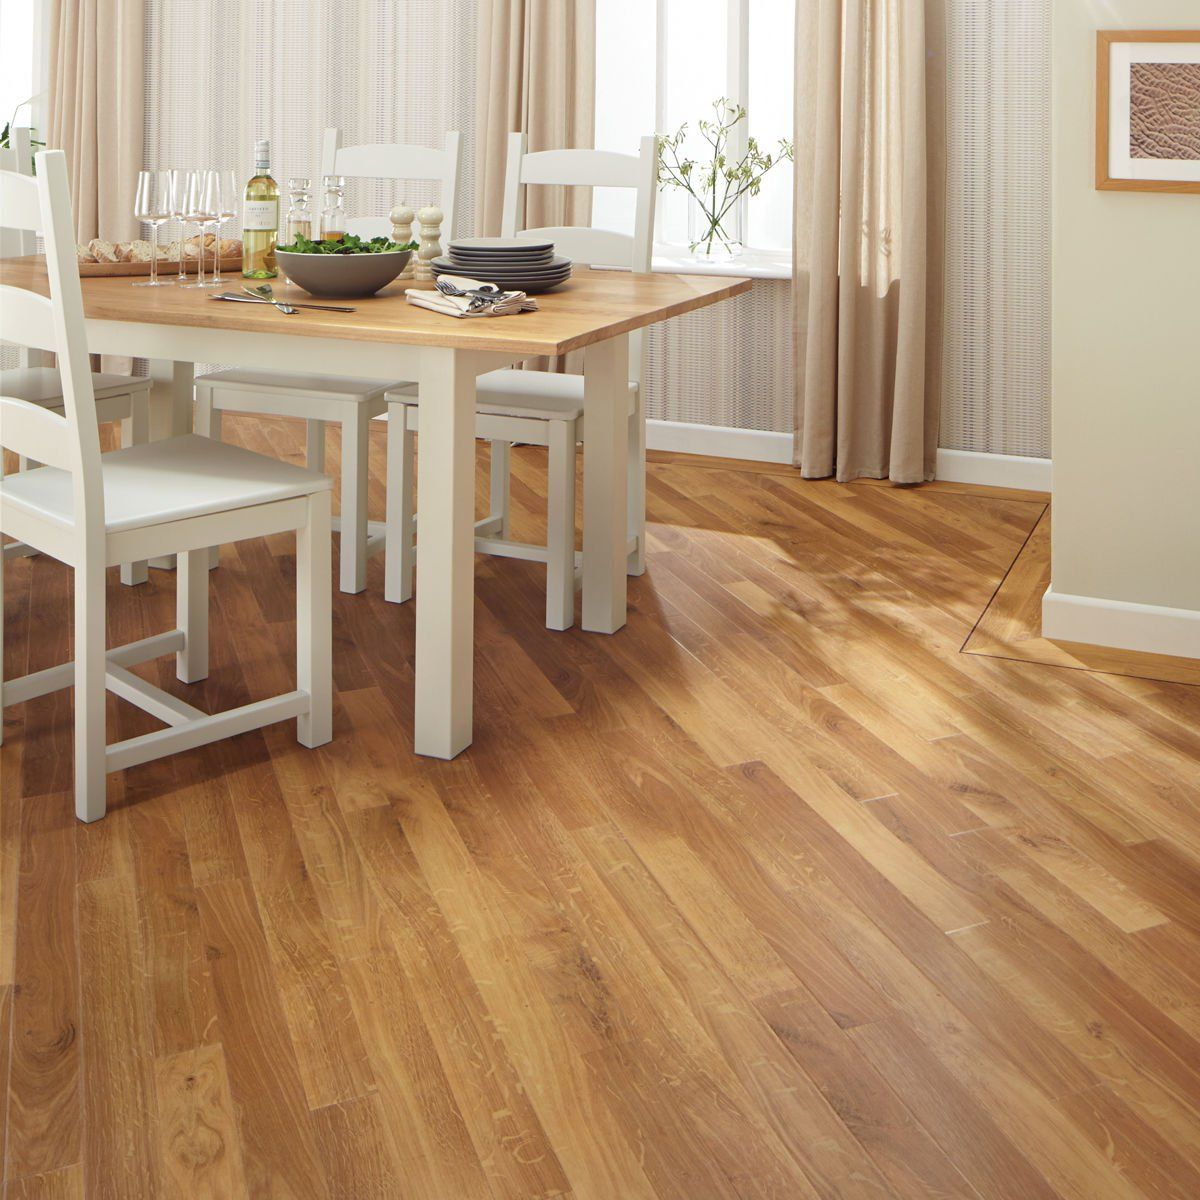 Karndean RP90 Fresco Light Oak Da Vinci vinyl flooring